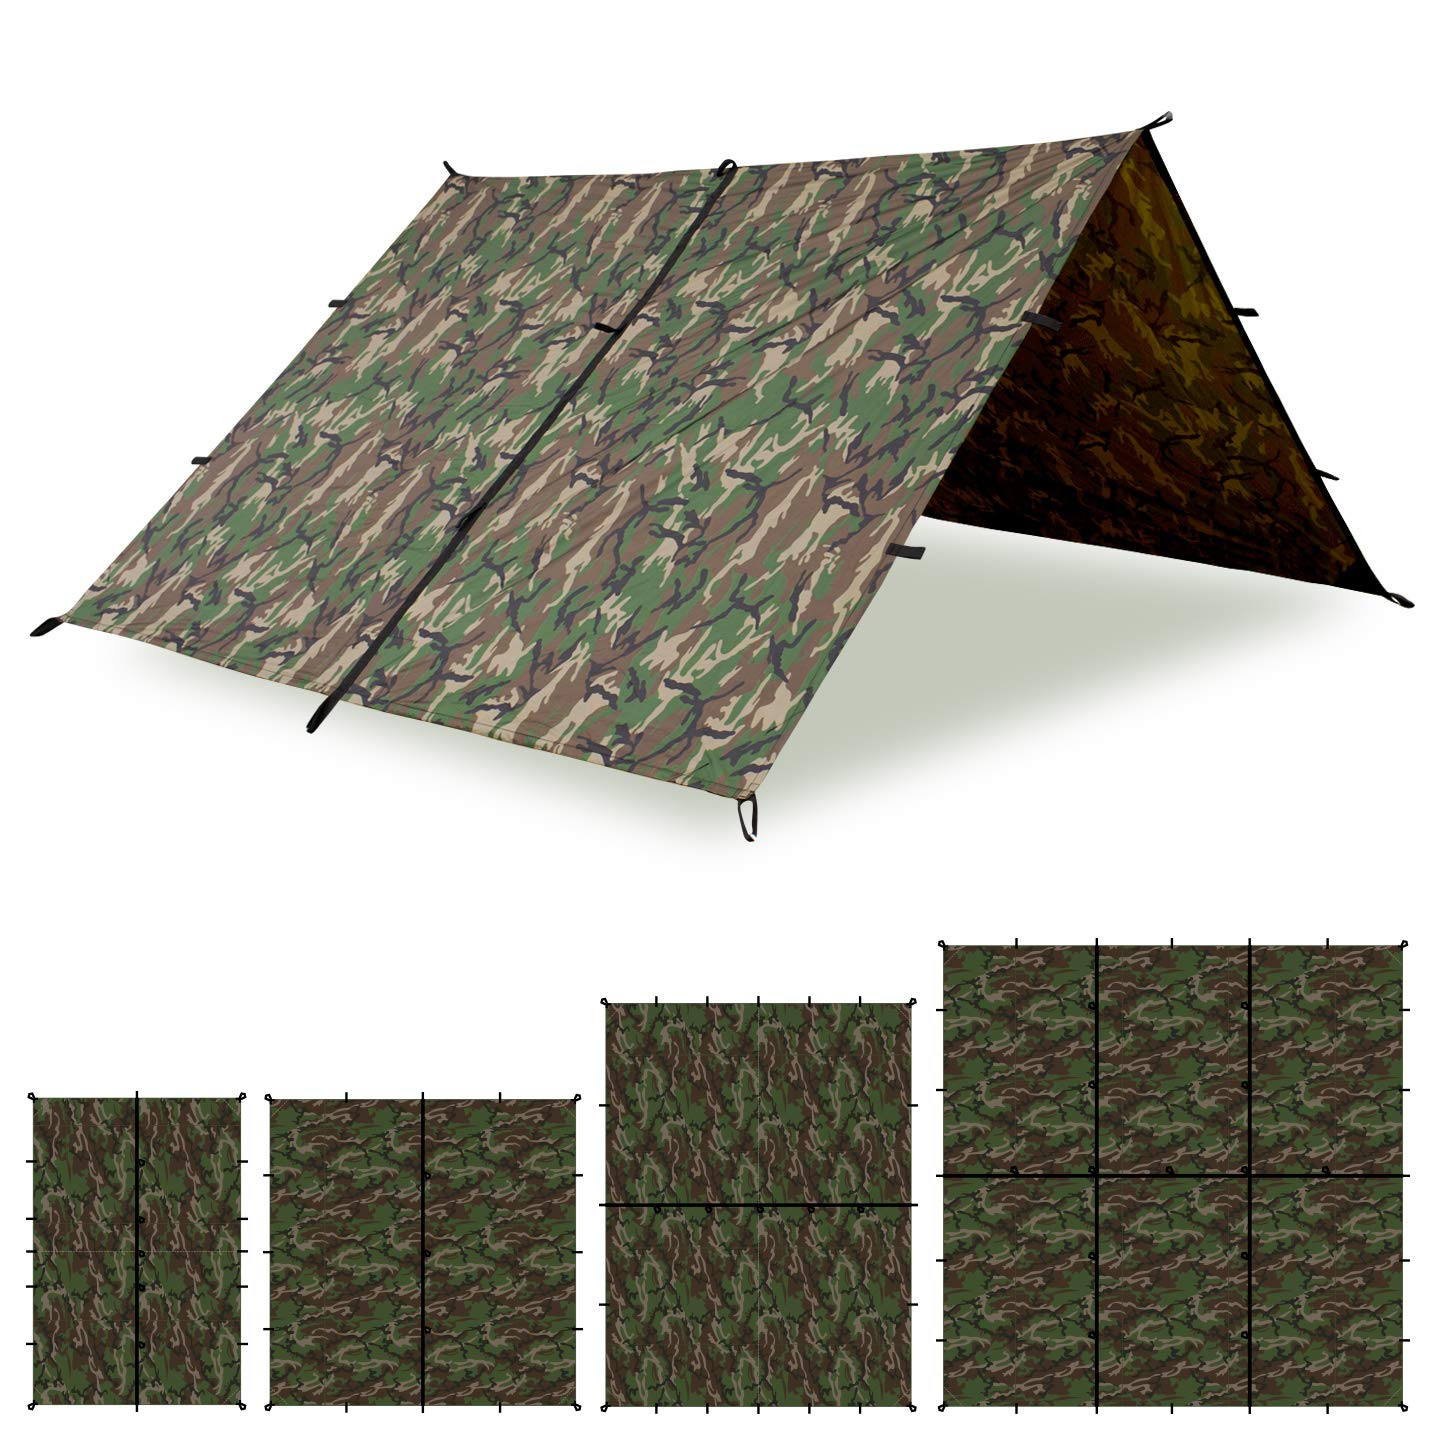 Aqua Quest Defender King Kamo Tarp - 100% Waterproof Heavy Duty Nylon Bushcraft Survival Shelter - 13x10 Camo by Aqua Quest